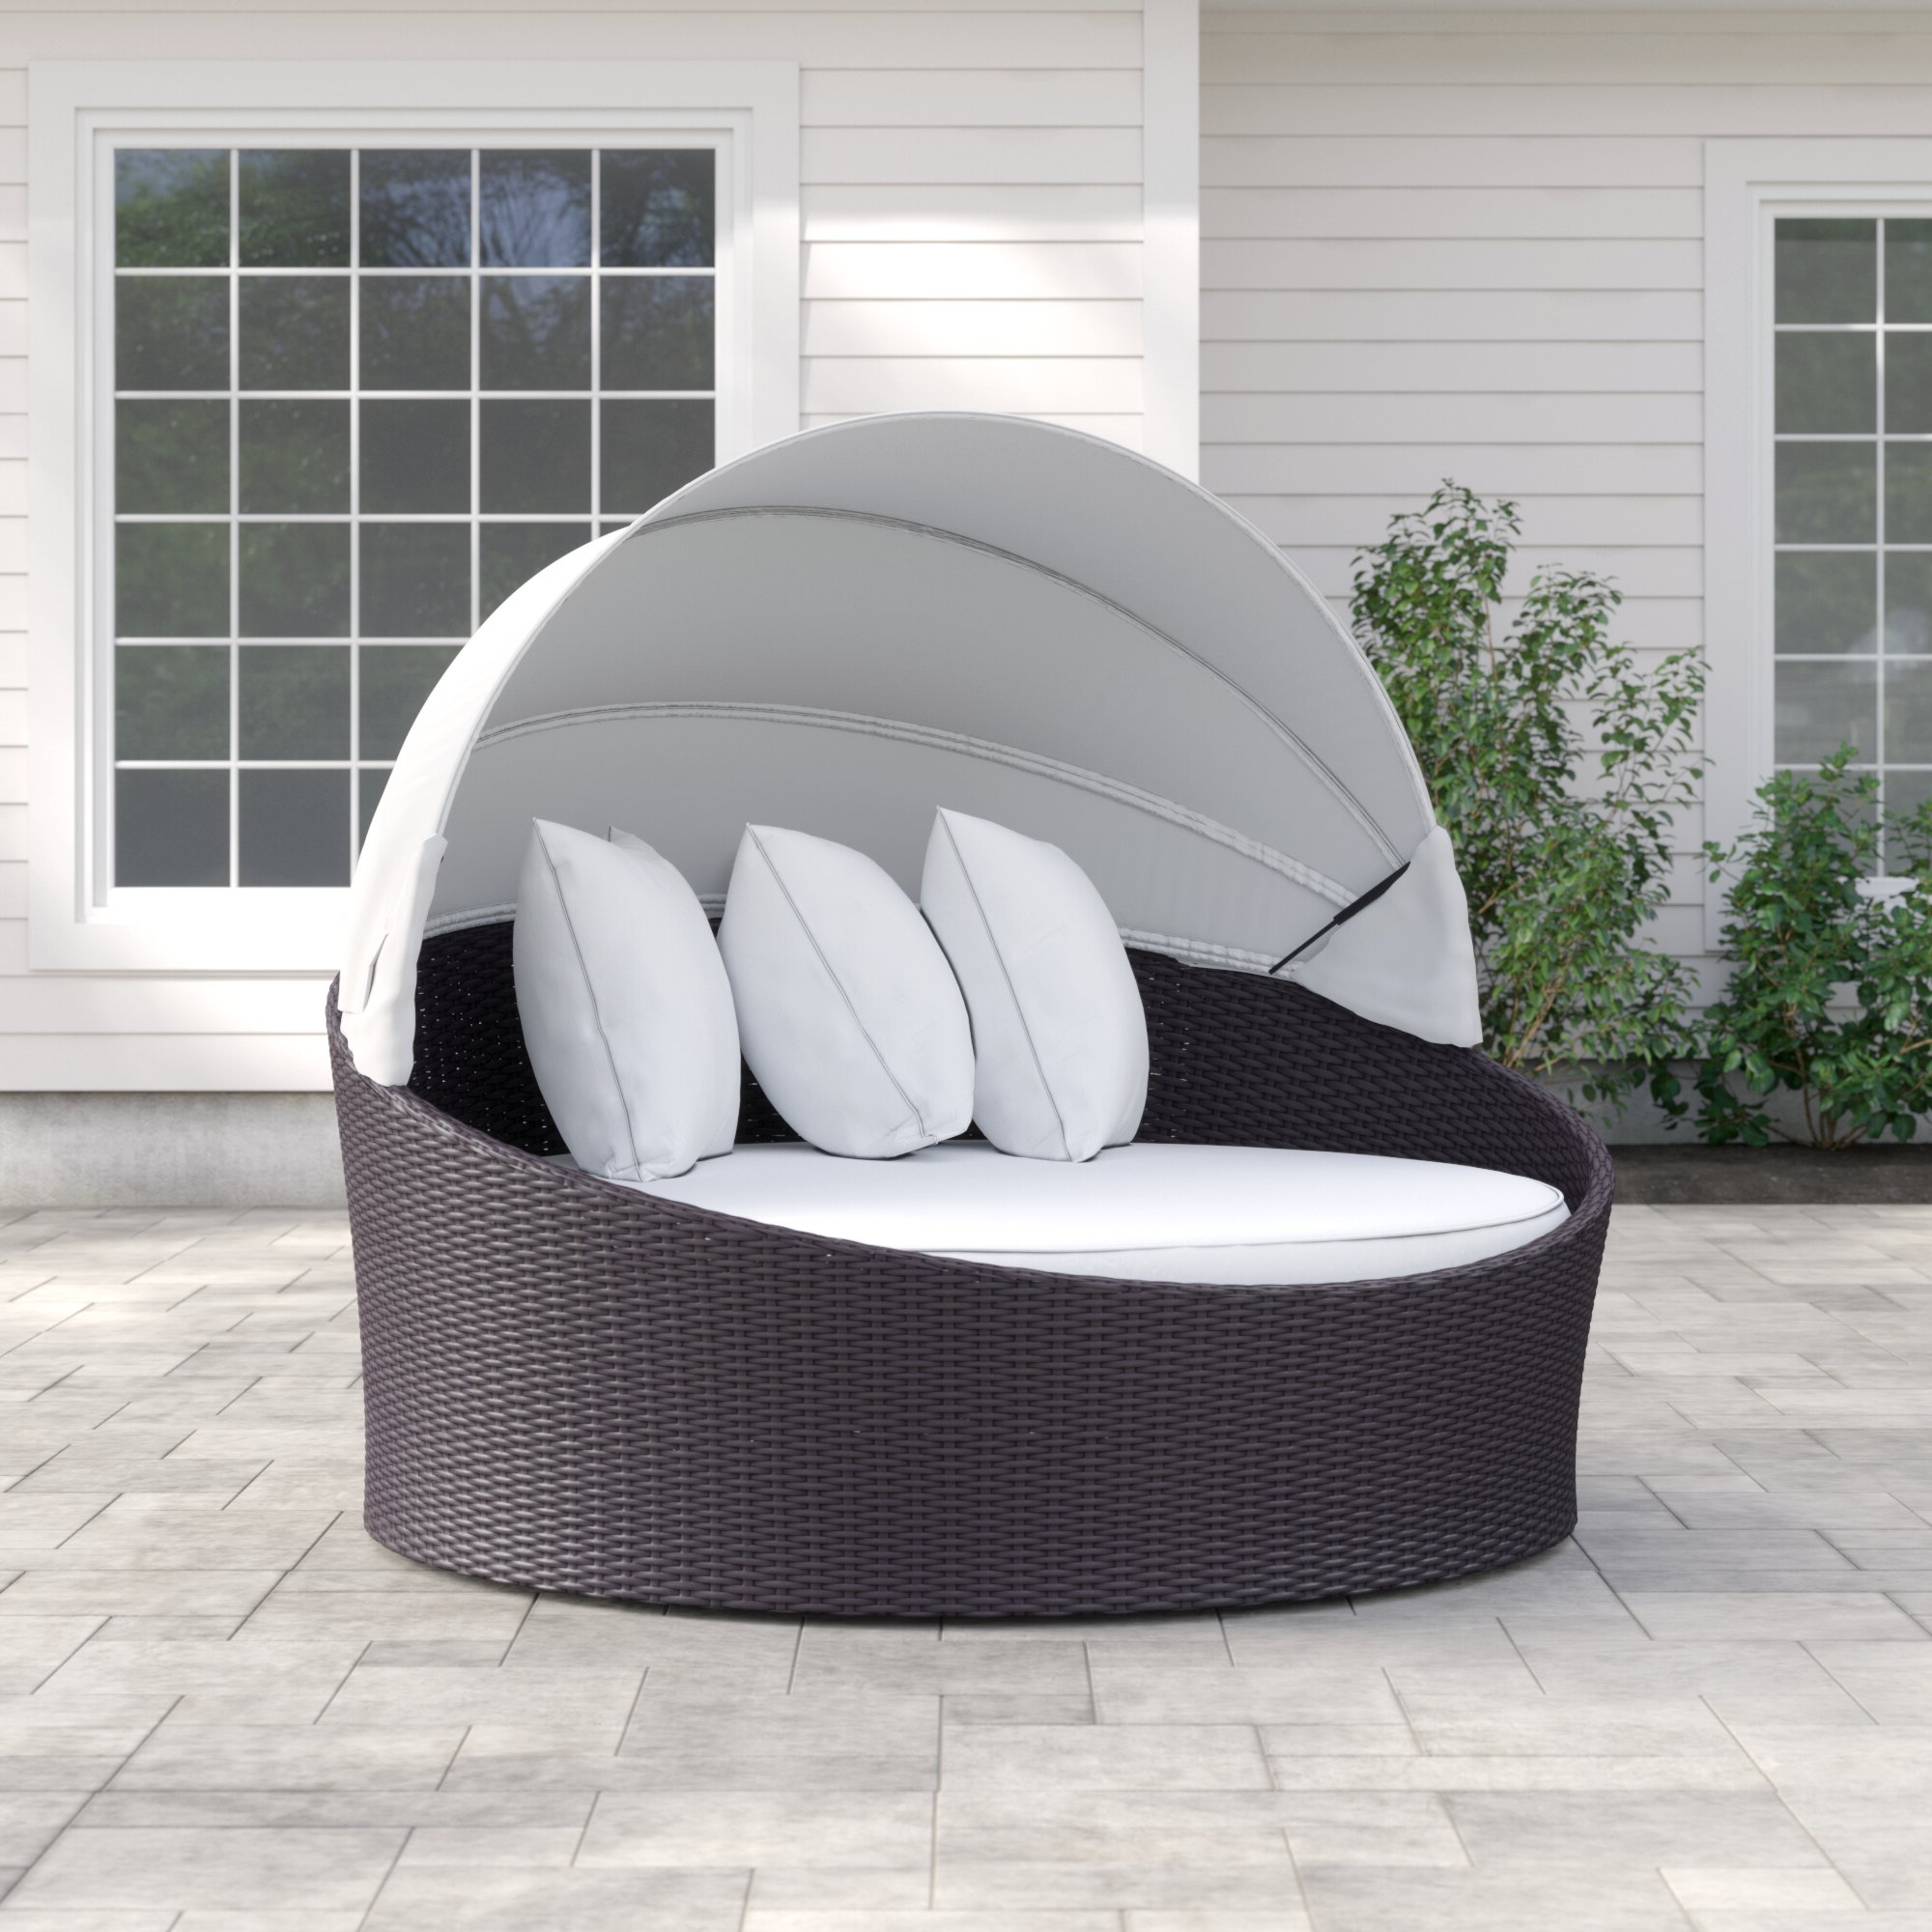 Trendy Brentwood Canopy Patio Daybed With Cushions Intended For Fansler Patio Daybeds With Cushions (View 19 of 20)